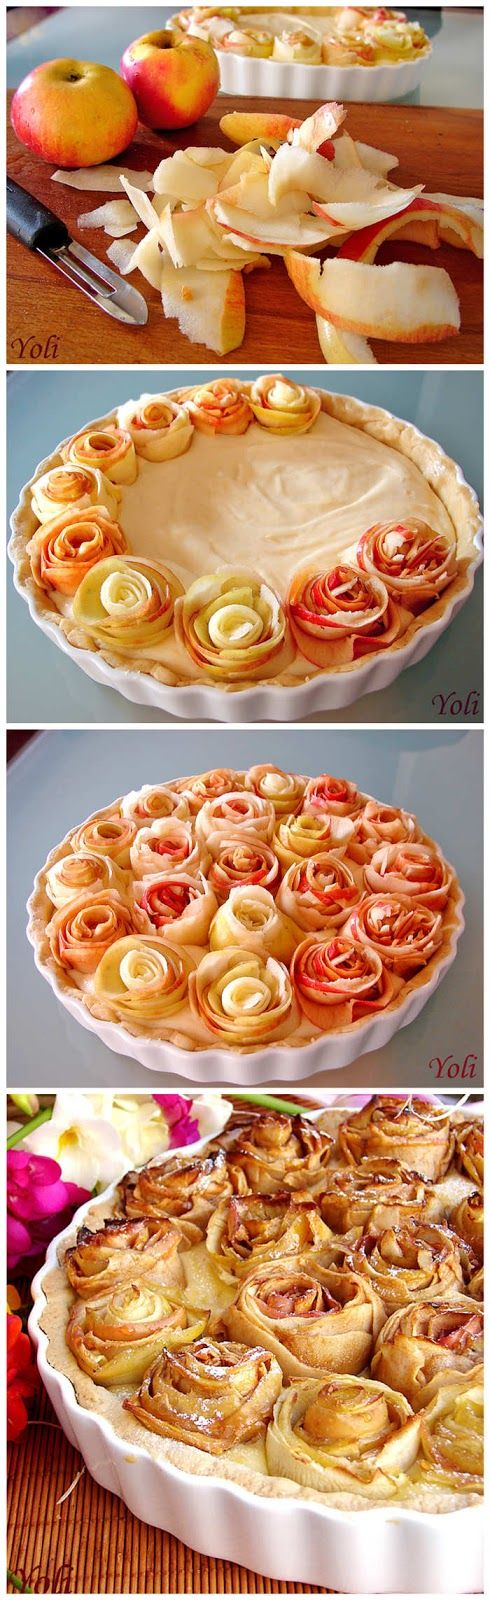 #apple #pie #roses #baking #recipe